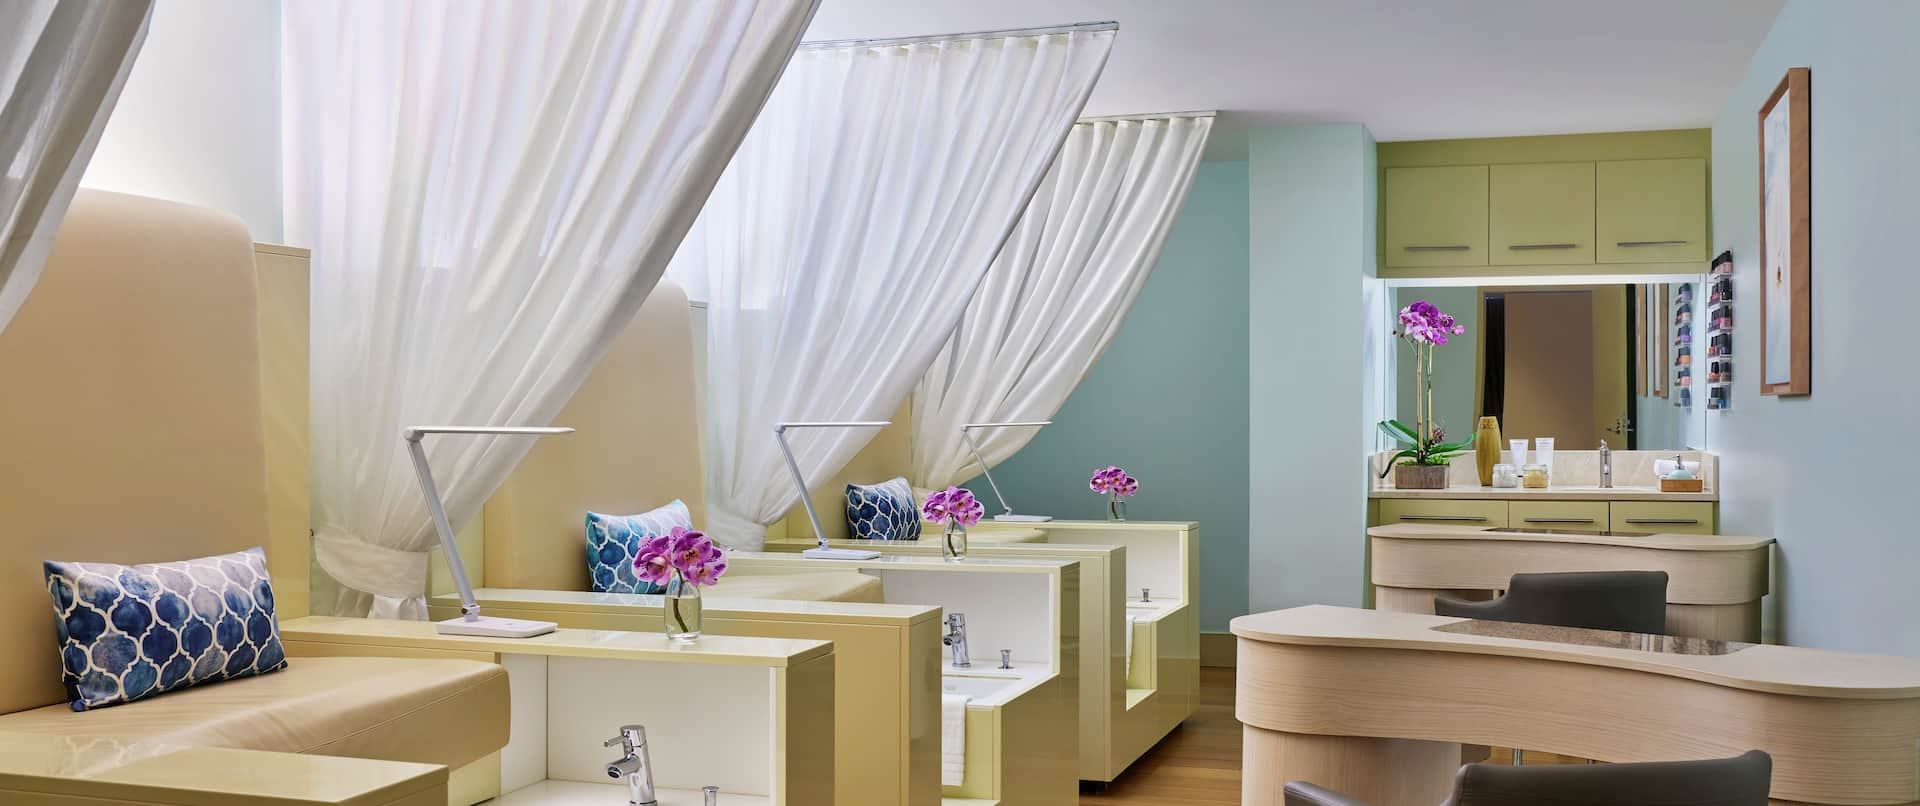 Spa treatment room with sinks and chairs